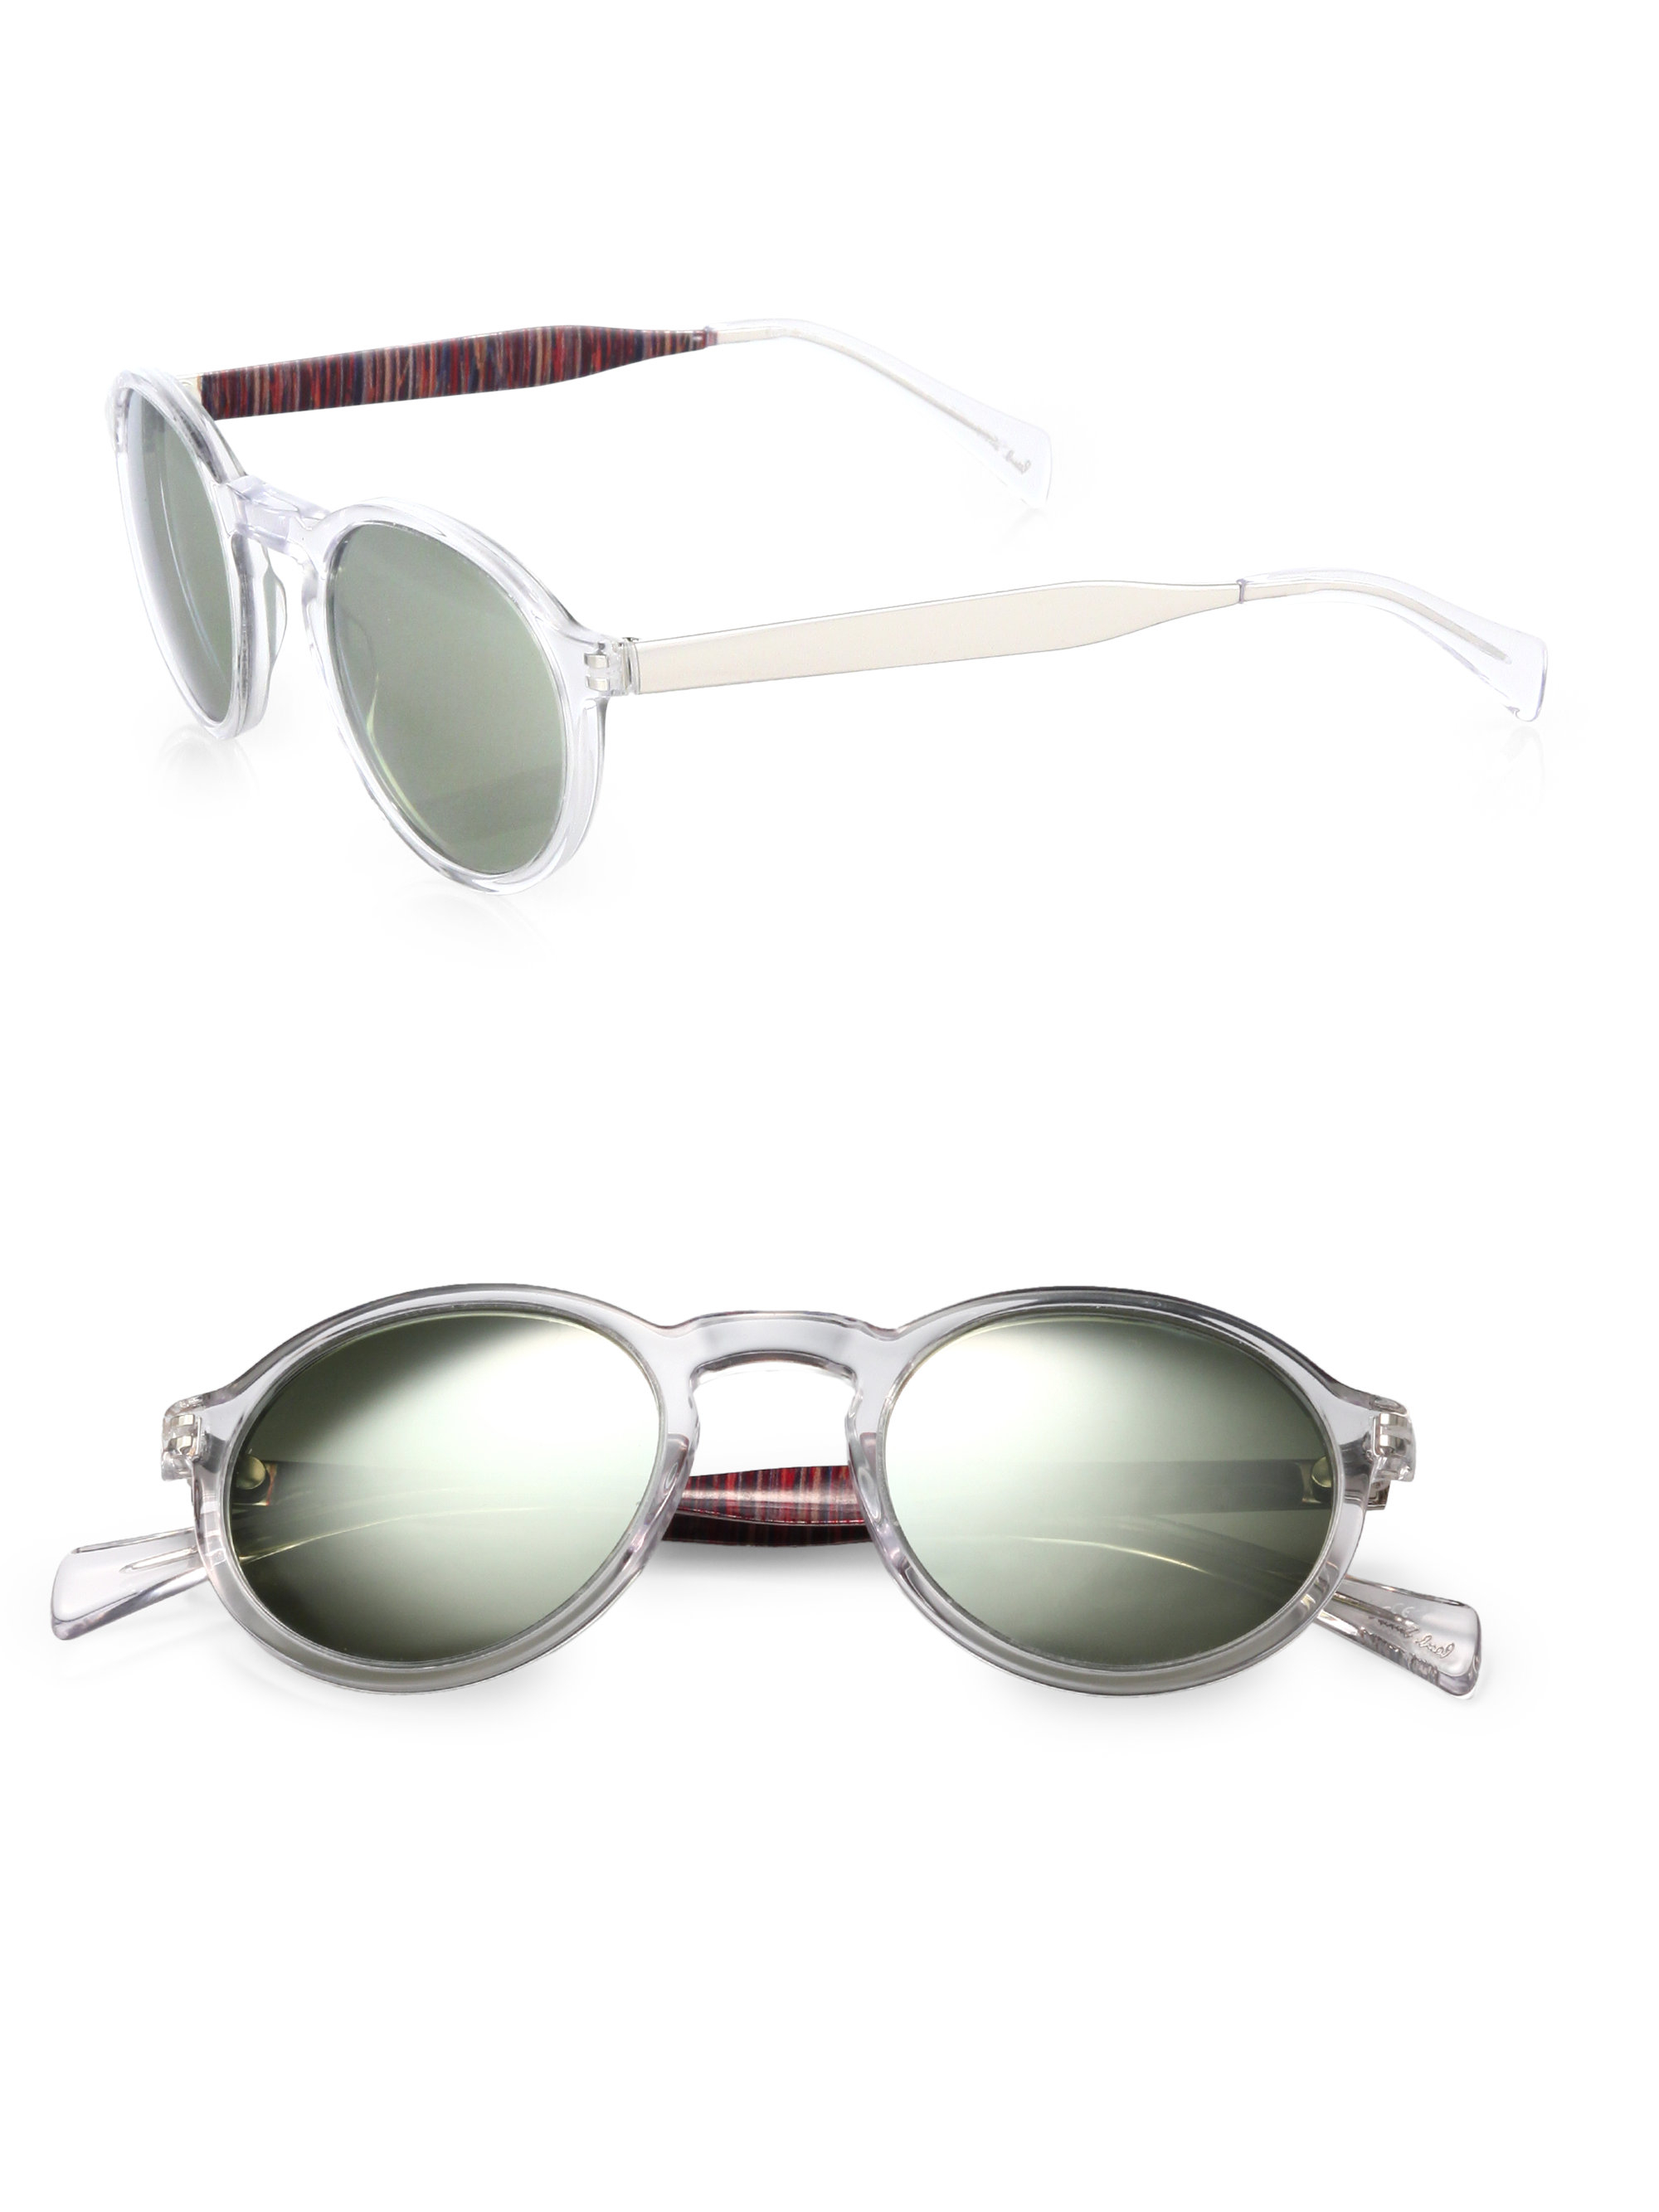 21cfb96166632 Paul Smith Elson Round Sunglasses in Metallic for Men - Lyst